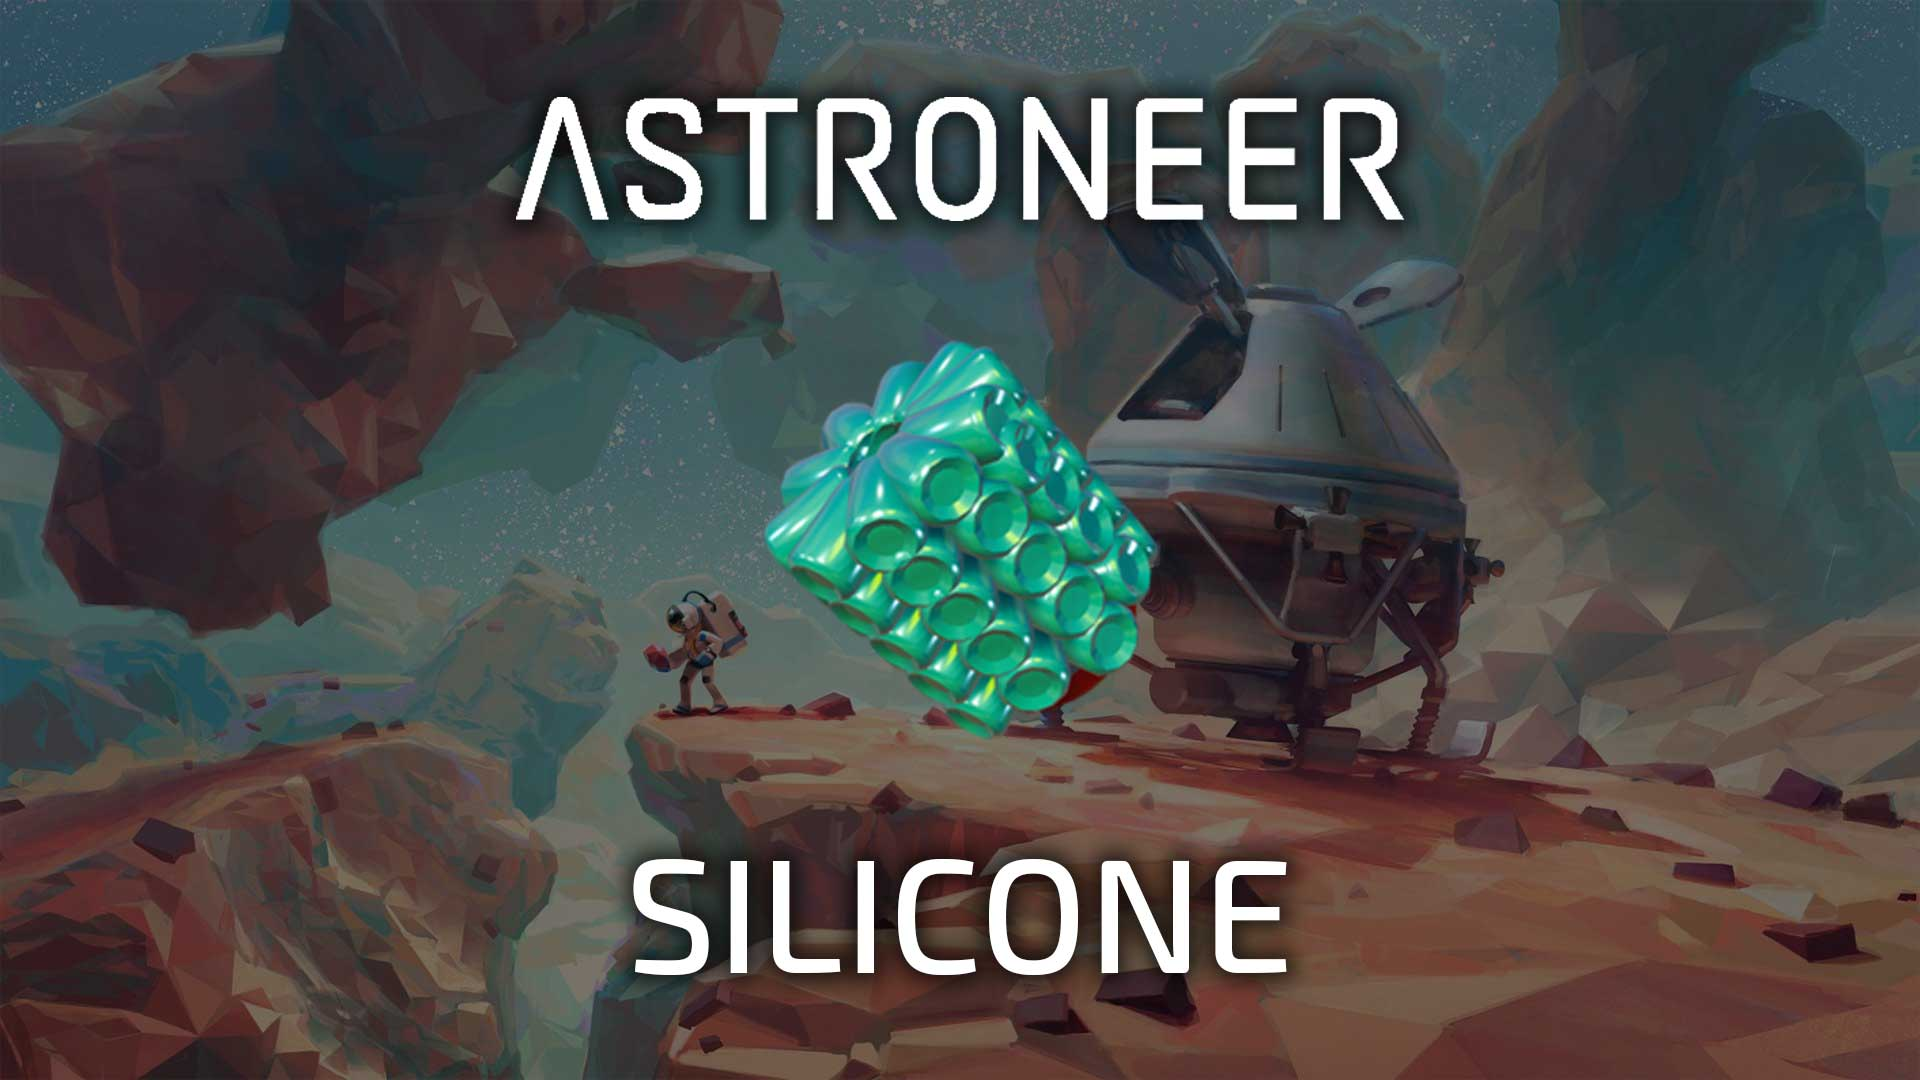 astroneer silicone